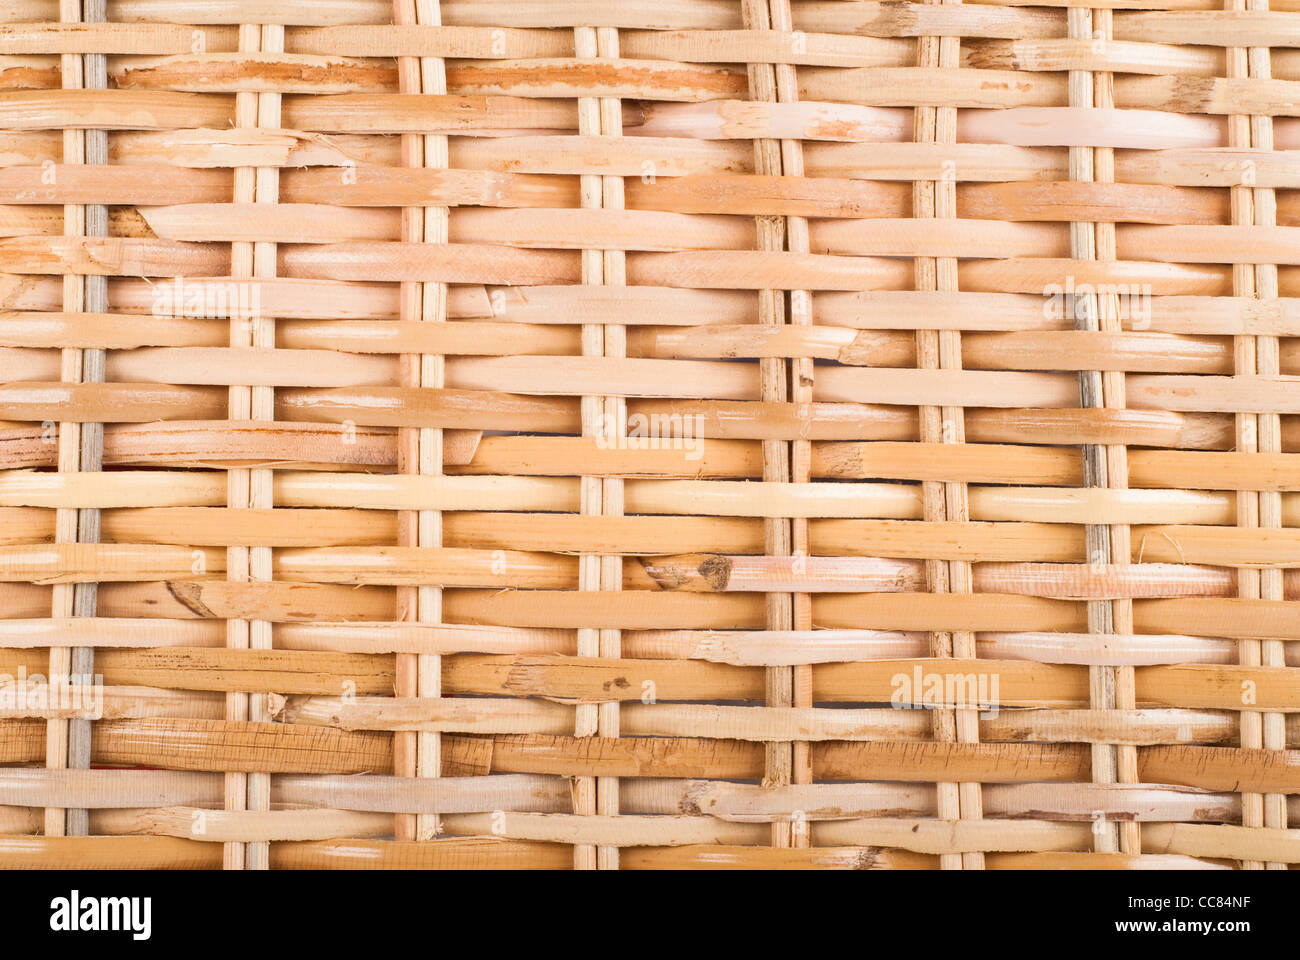 stained basket texture closeup - Stock Image